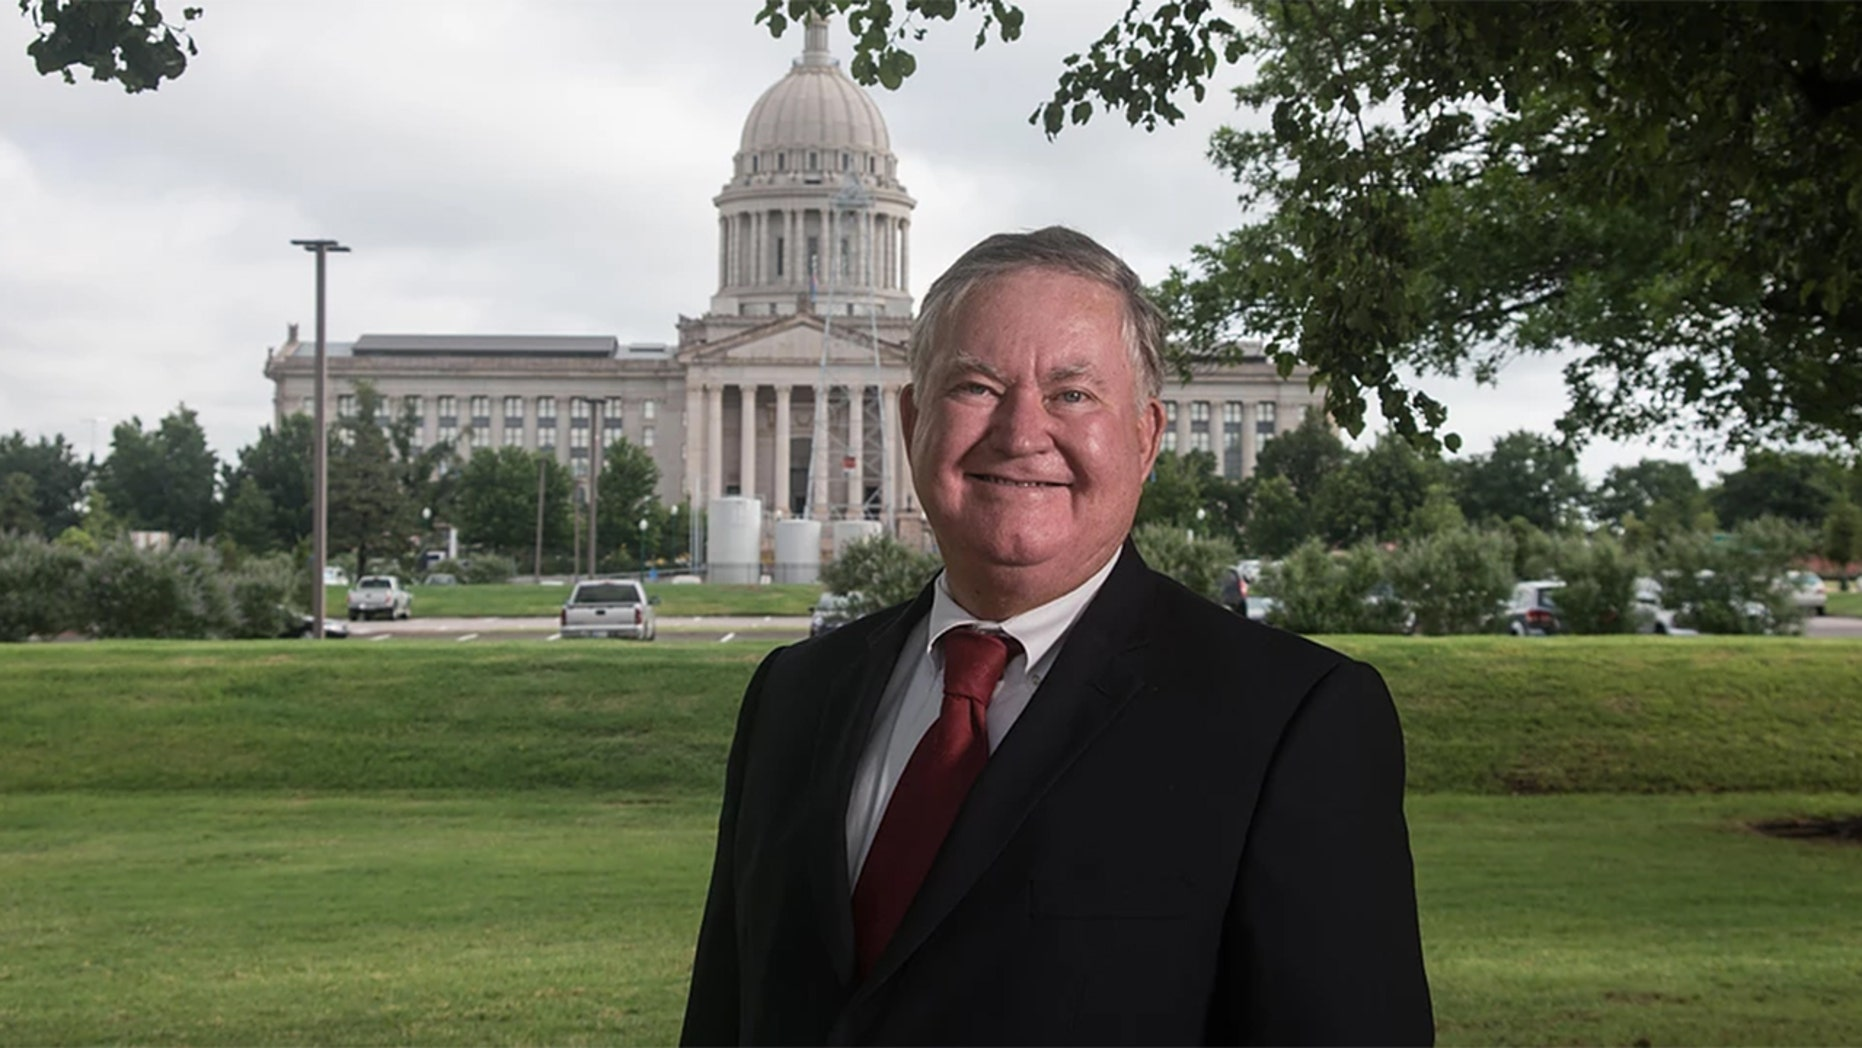 Democrat congressional candidate Tom Guild apologized after he was caught stealing his opponent's yard signs from alongside an Oklahoma road.